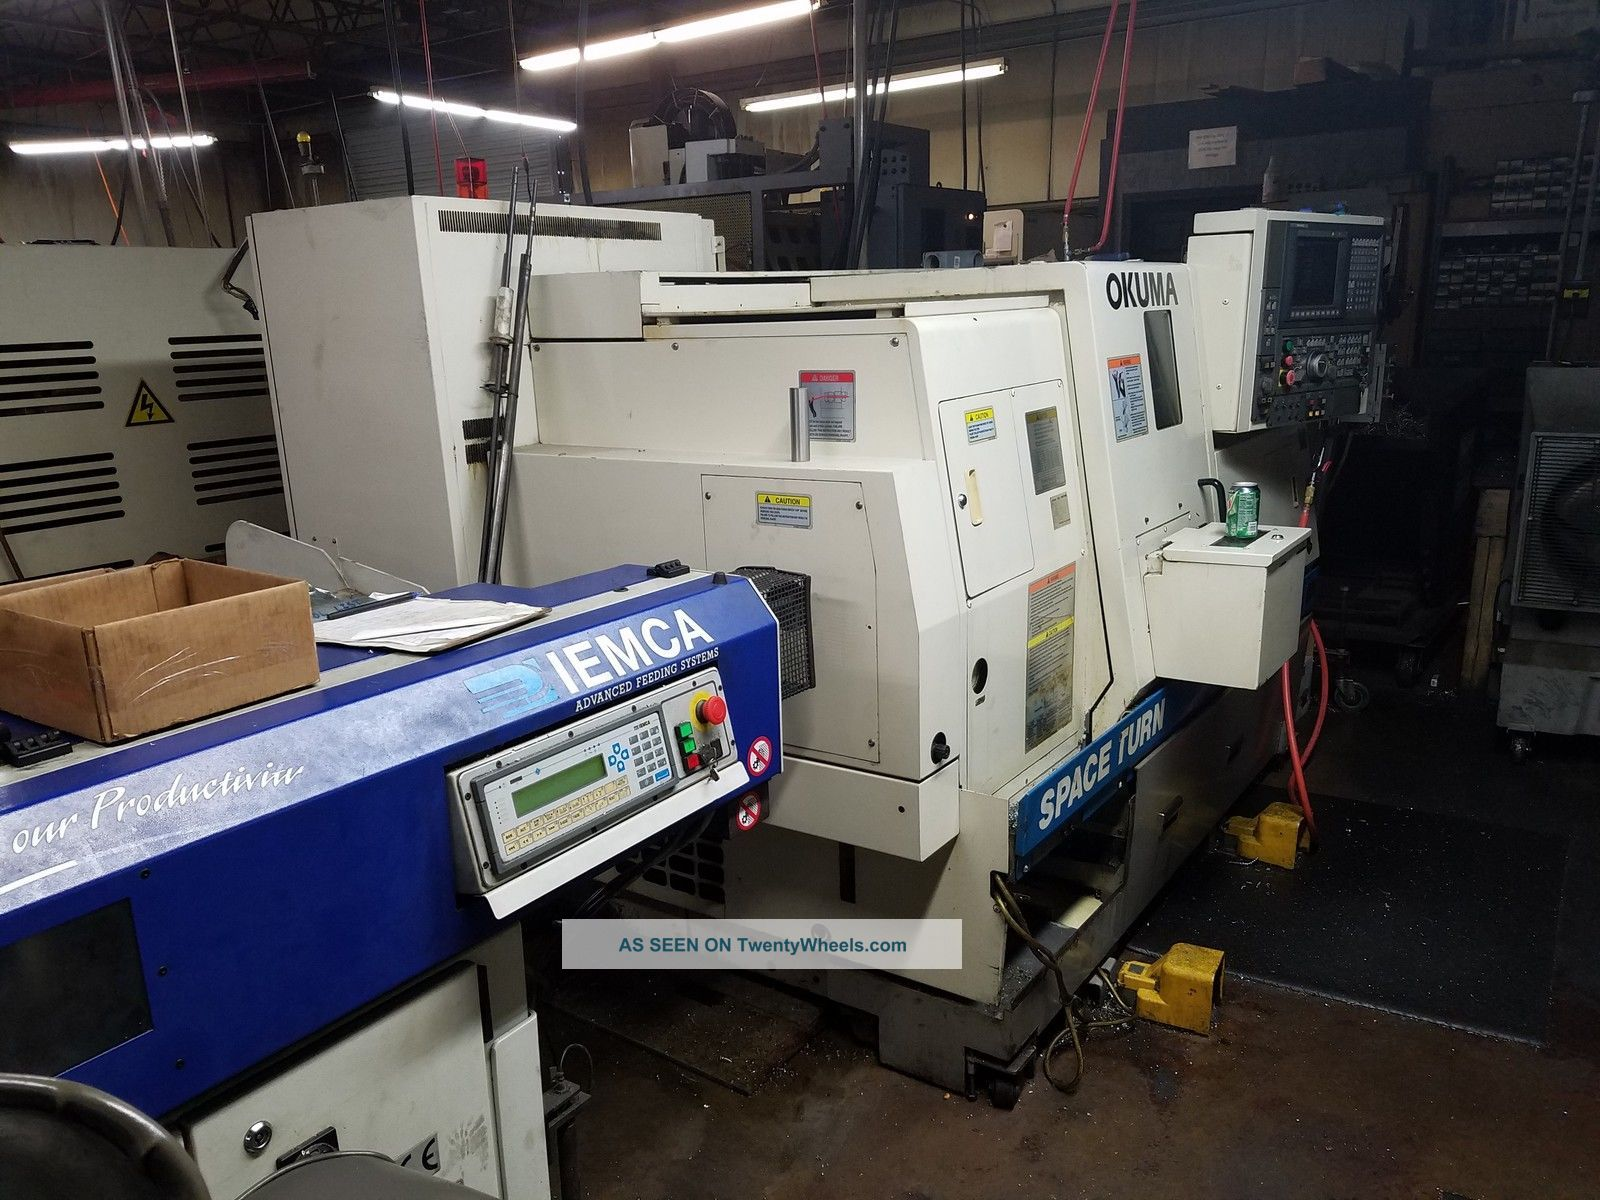 Okuma Lb200mw Cnc Lathe With Live Tooling,  Sub Spindle,  Iemca Bar (2 Avail) 2003 Metalworking Lathes photo